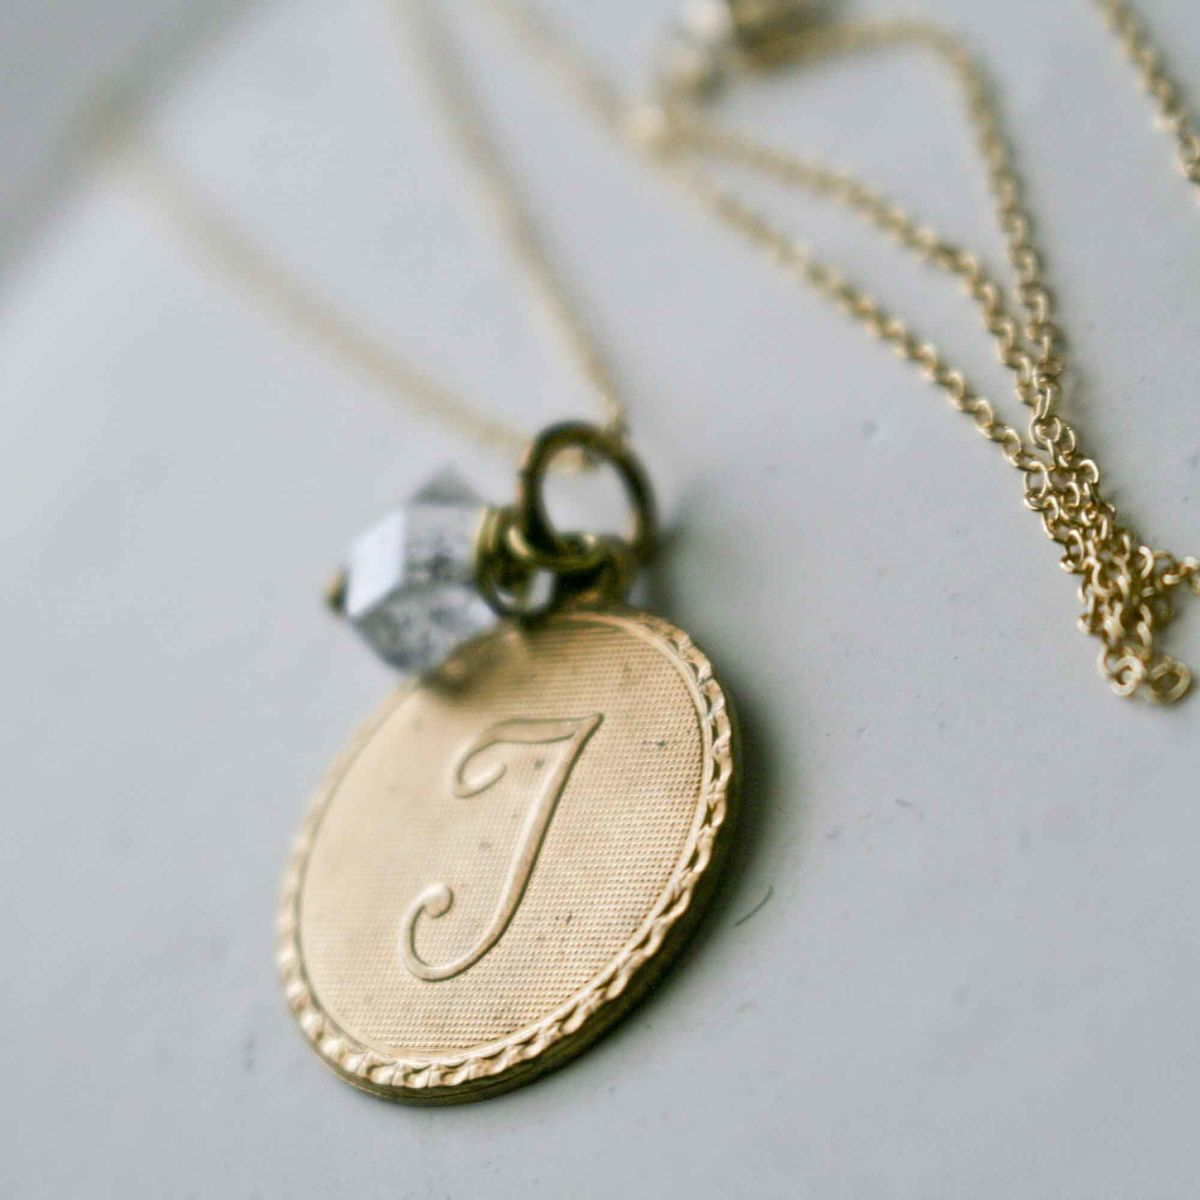 Uppercase Cursive Initial Monogram Letter Round Disc Charm Necklace Intended For Most Current Letter W Alphabet Locket Element Necklaces (View 23 of 25)